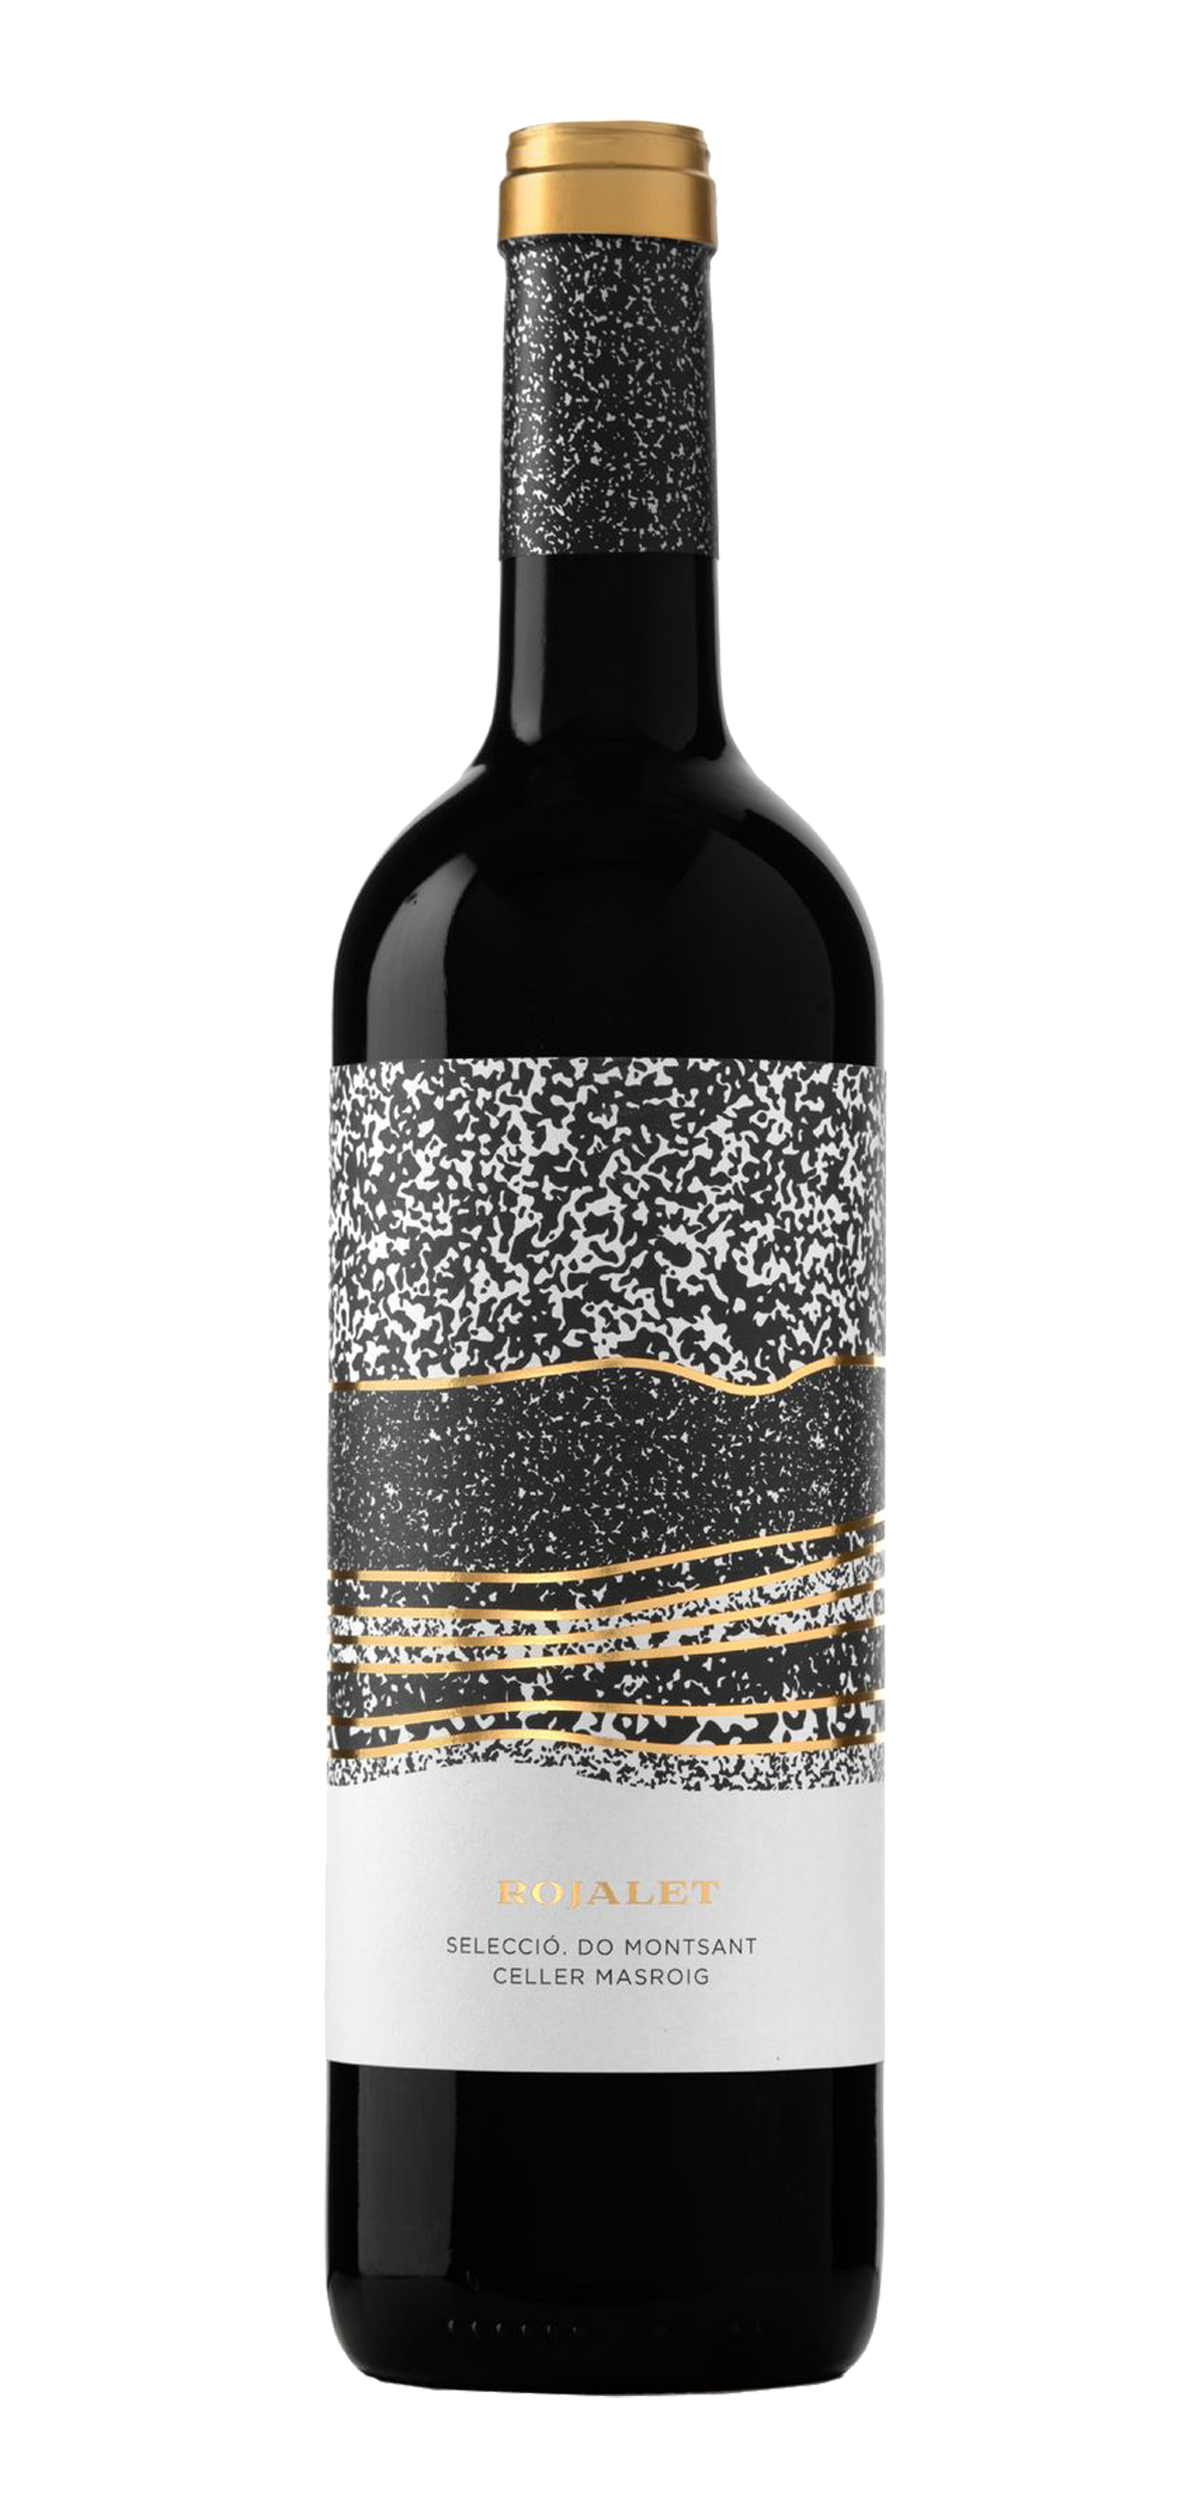 Bojalet wine bottle design